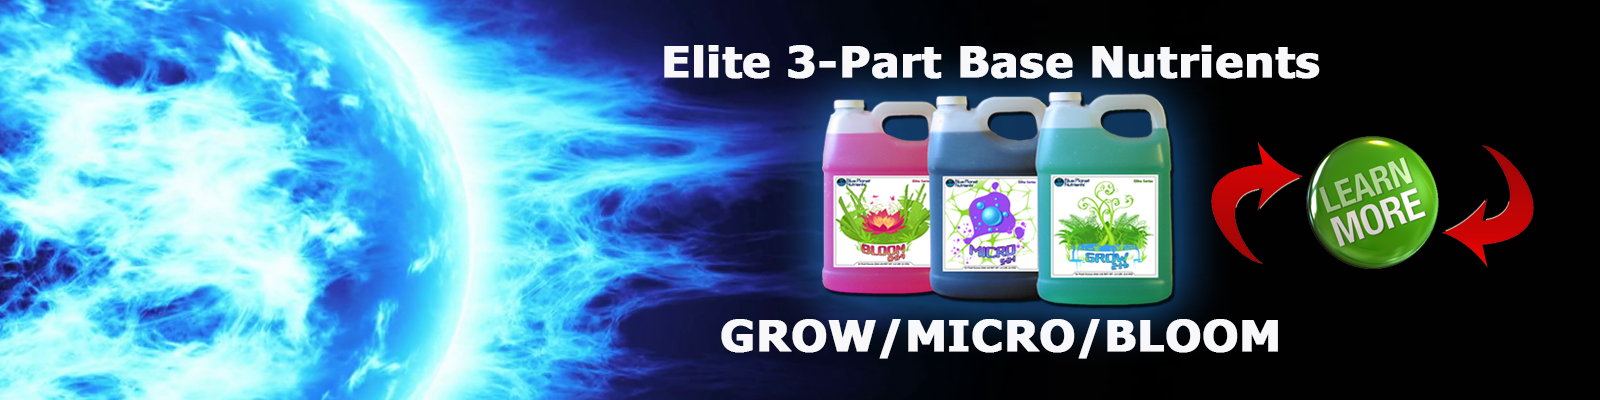 ELITE 3-Part hydroponic nutrients